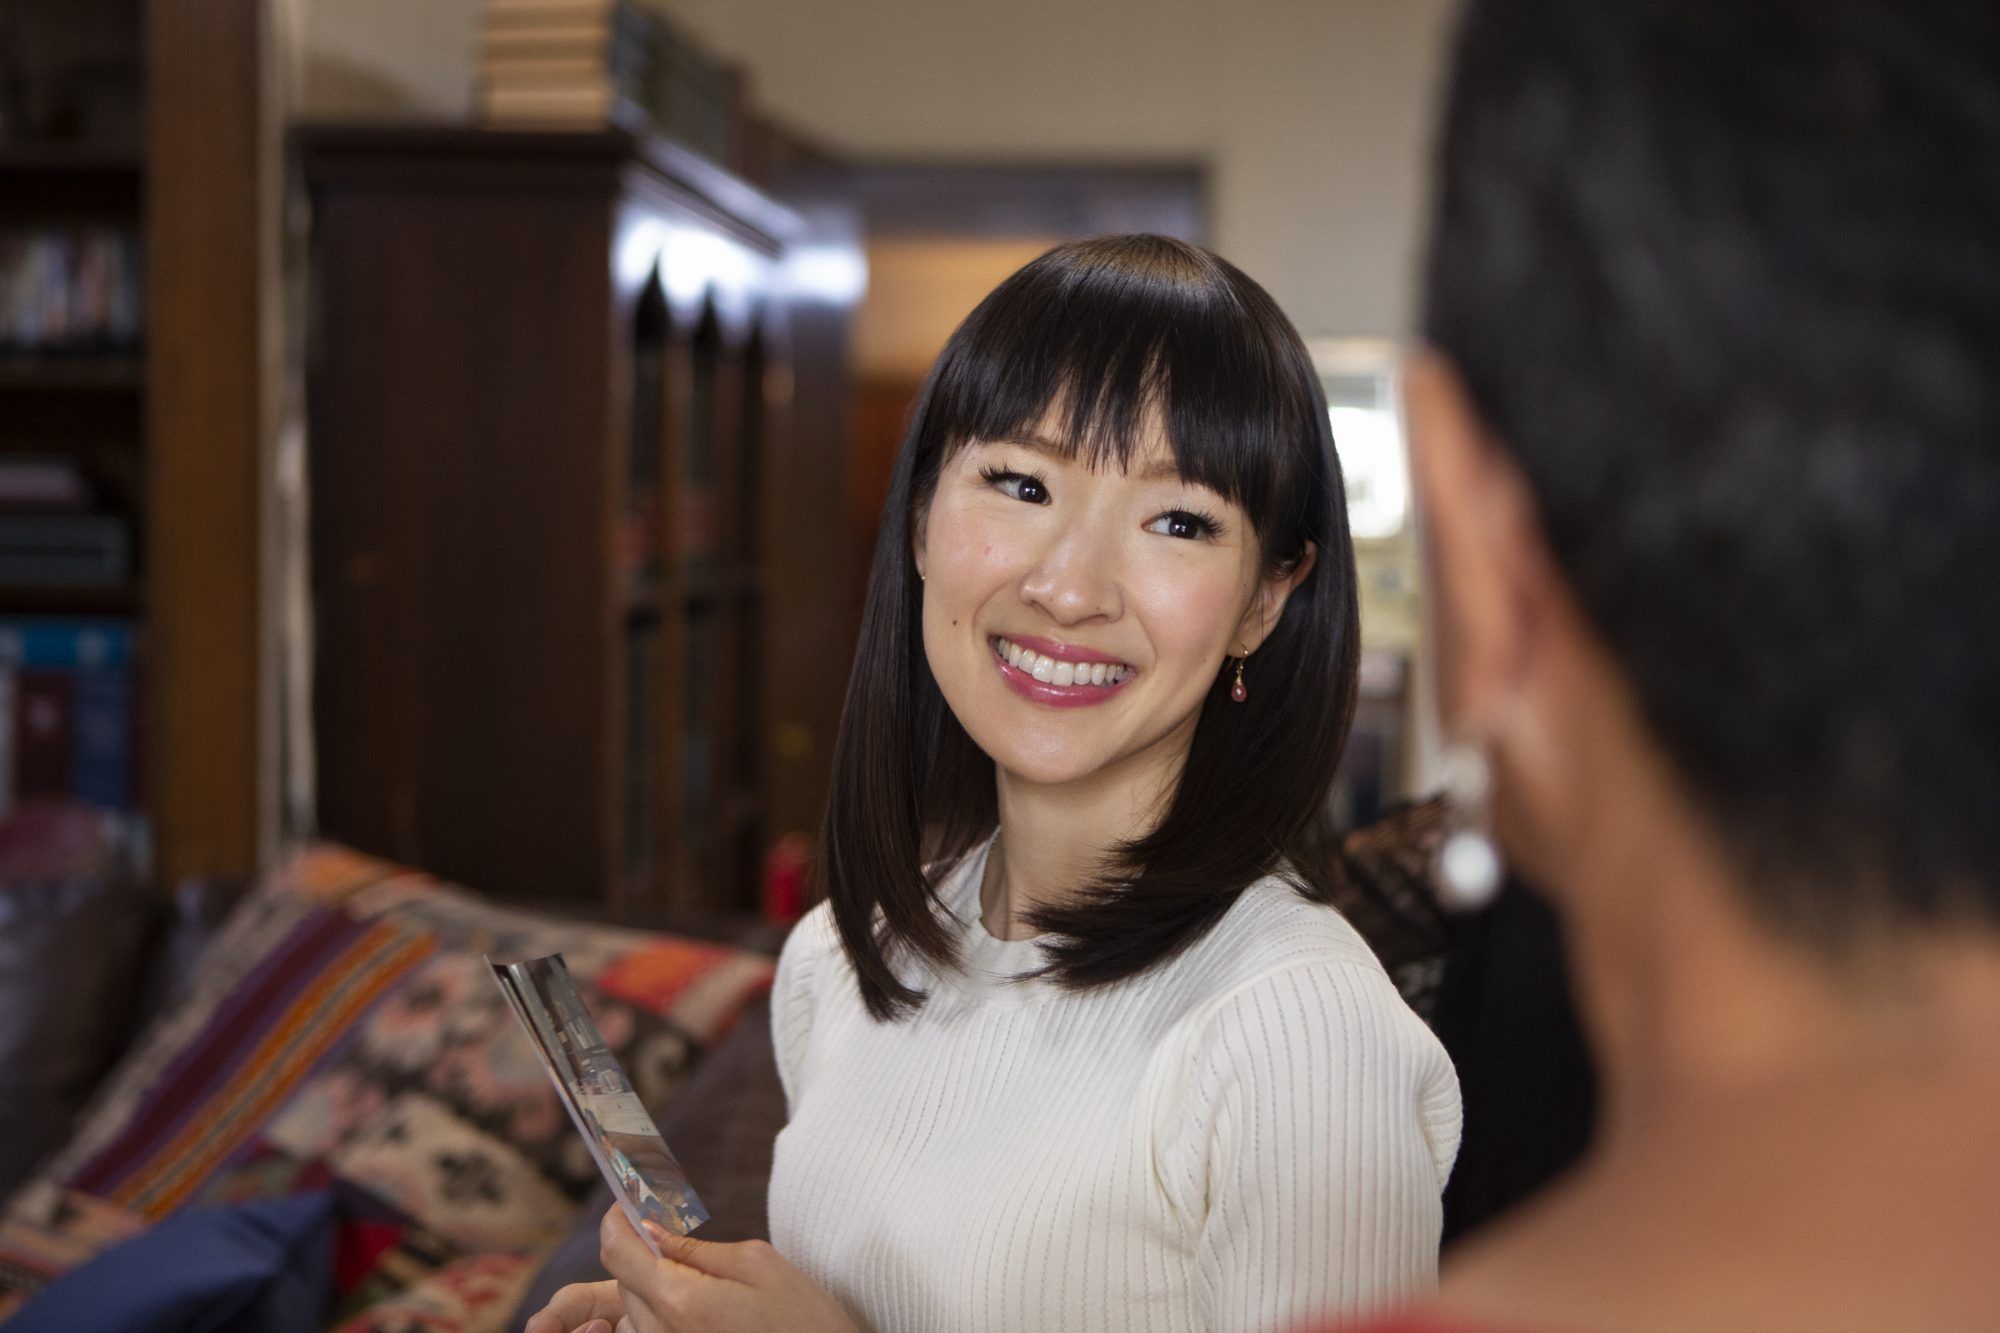 Tidying Up with Marie Kondo (Netflix, Jan. 1)